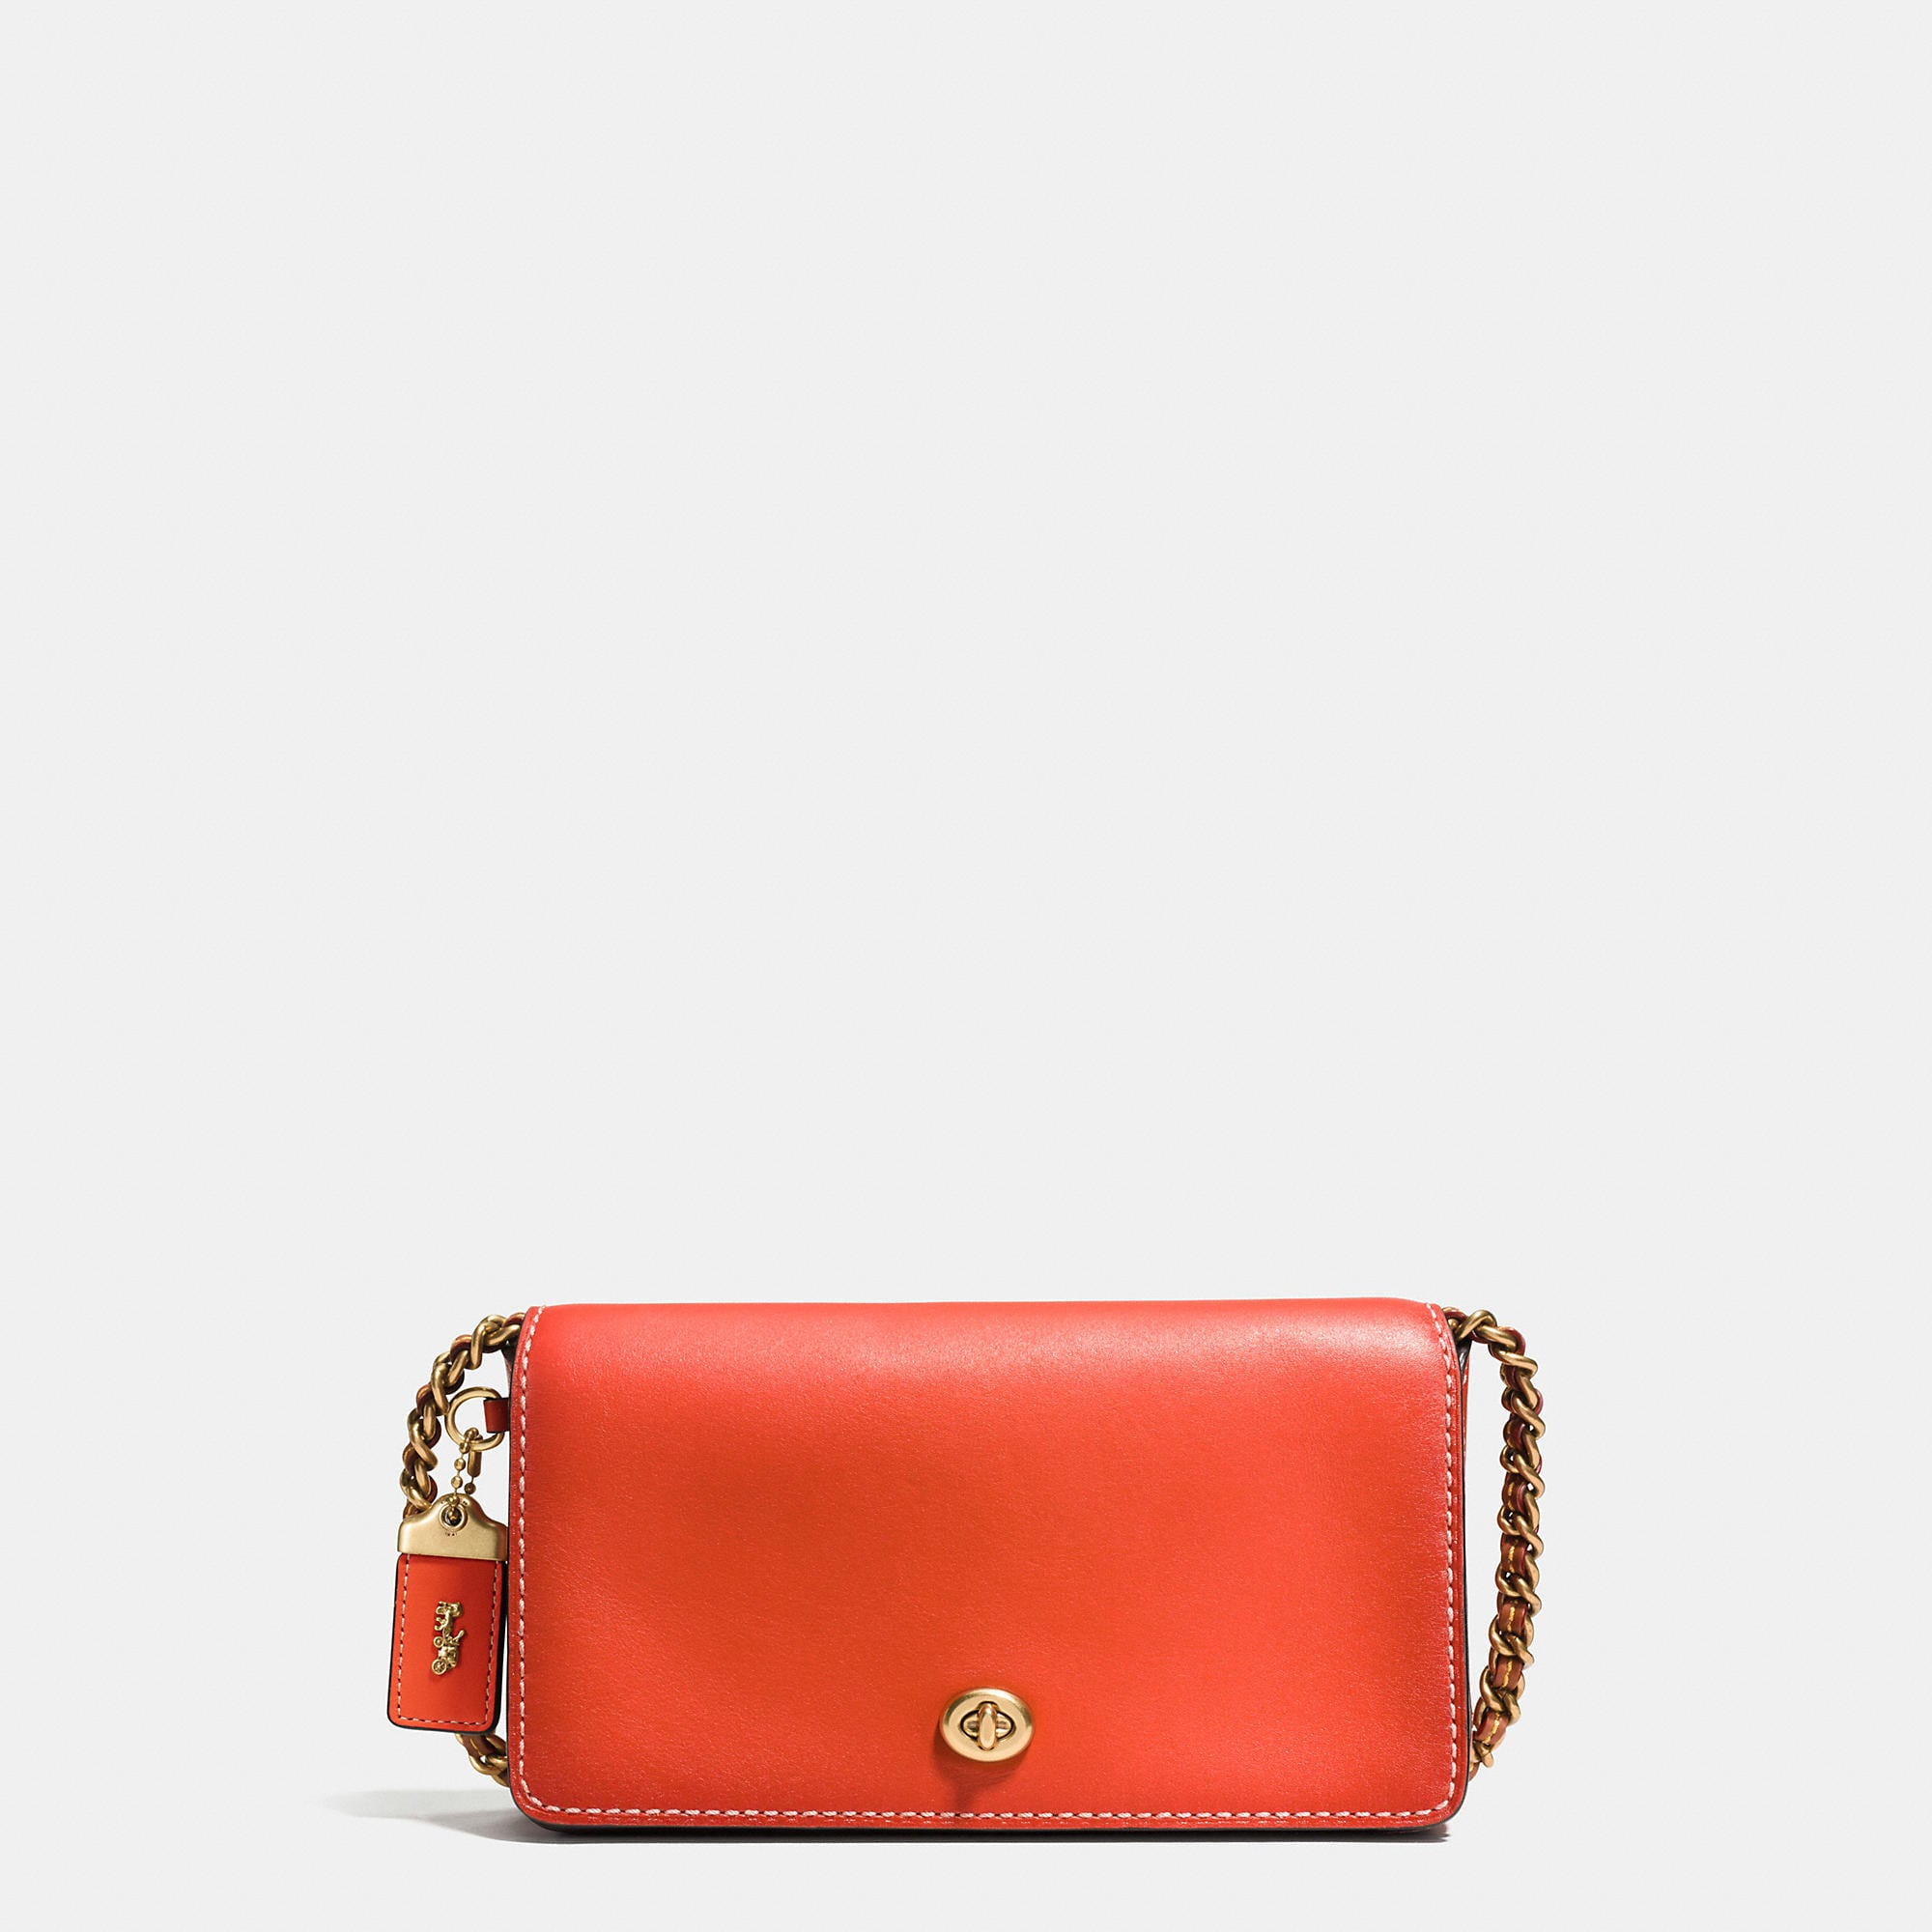 Coach Dinky Crossbody In Burnished Glovetanned Leather